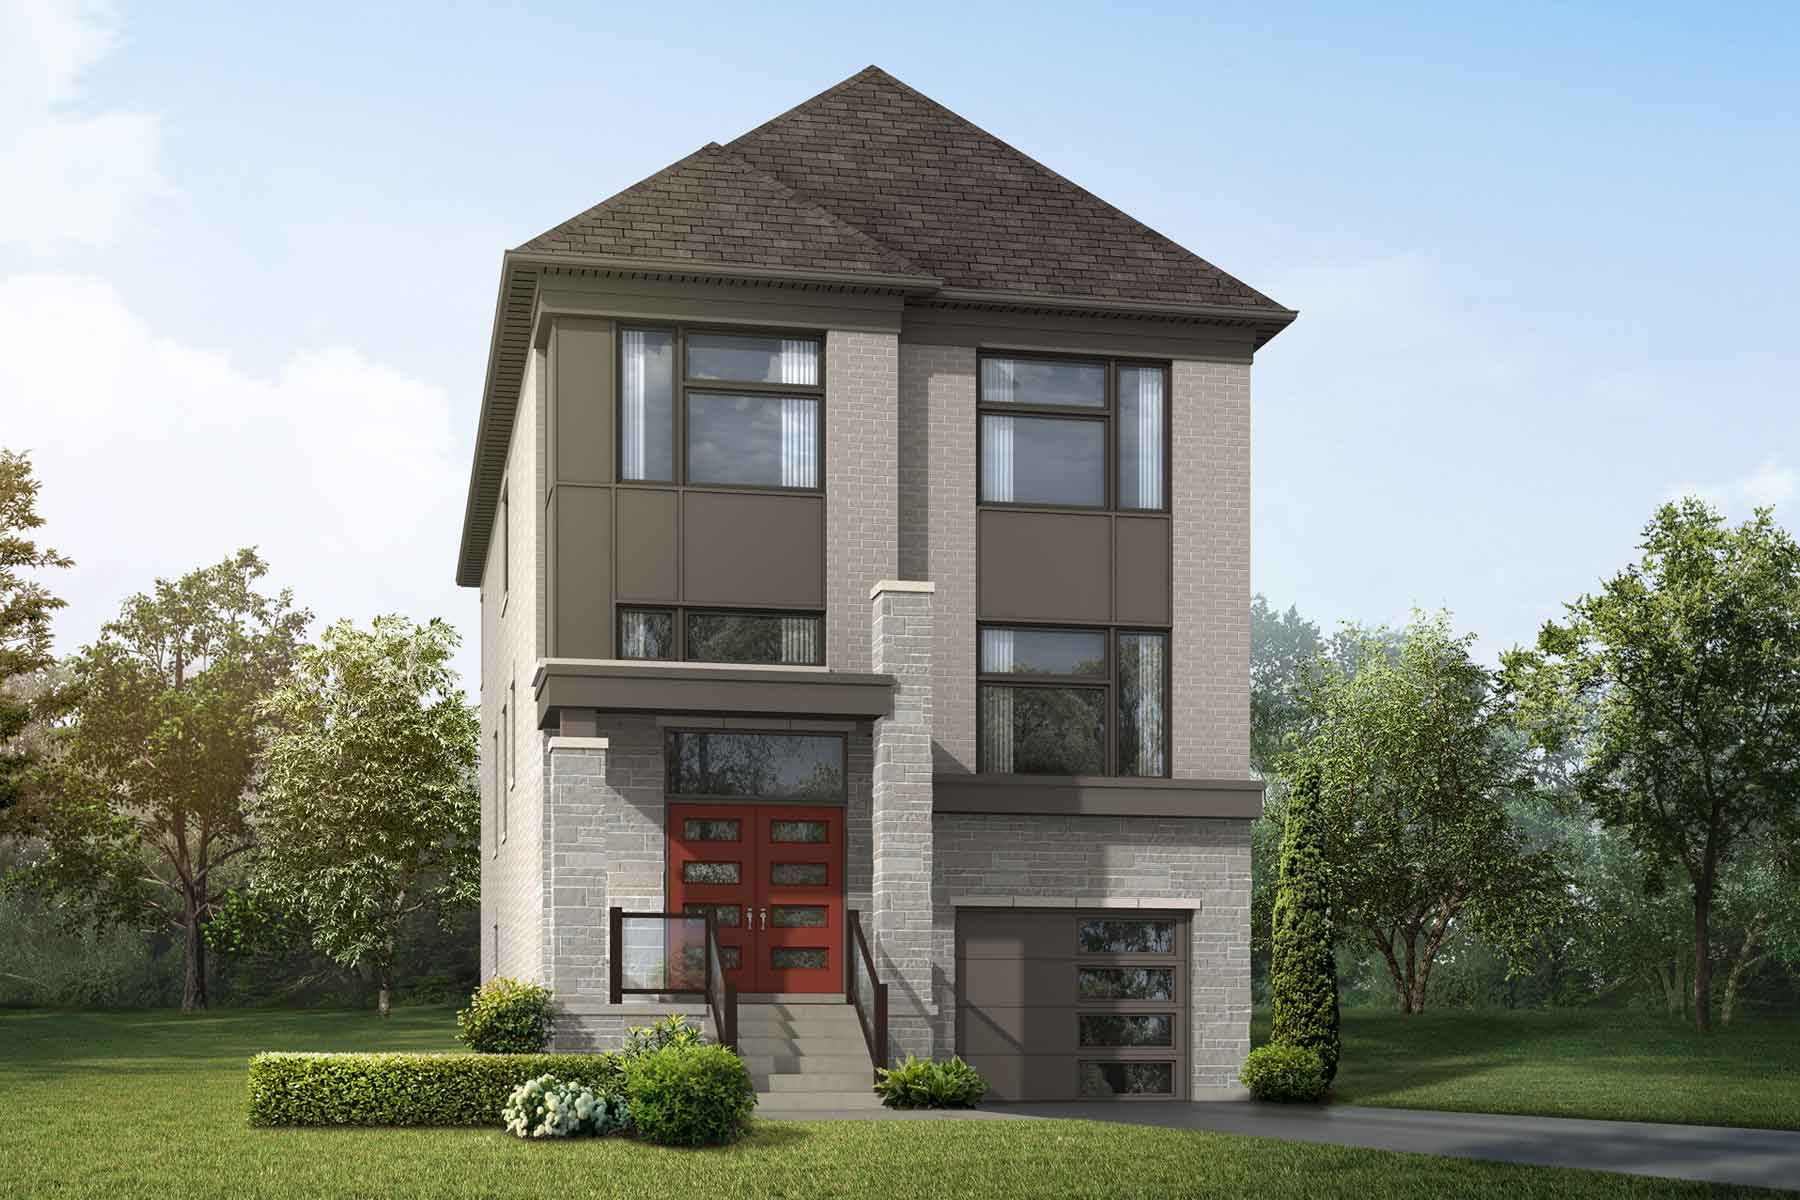 Teal Plan modern_springwater_teal_main at Springwater in Markham Ontario by Mattamy Homes